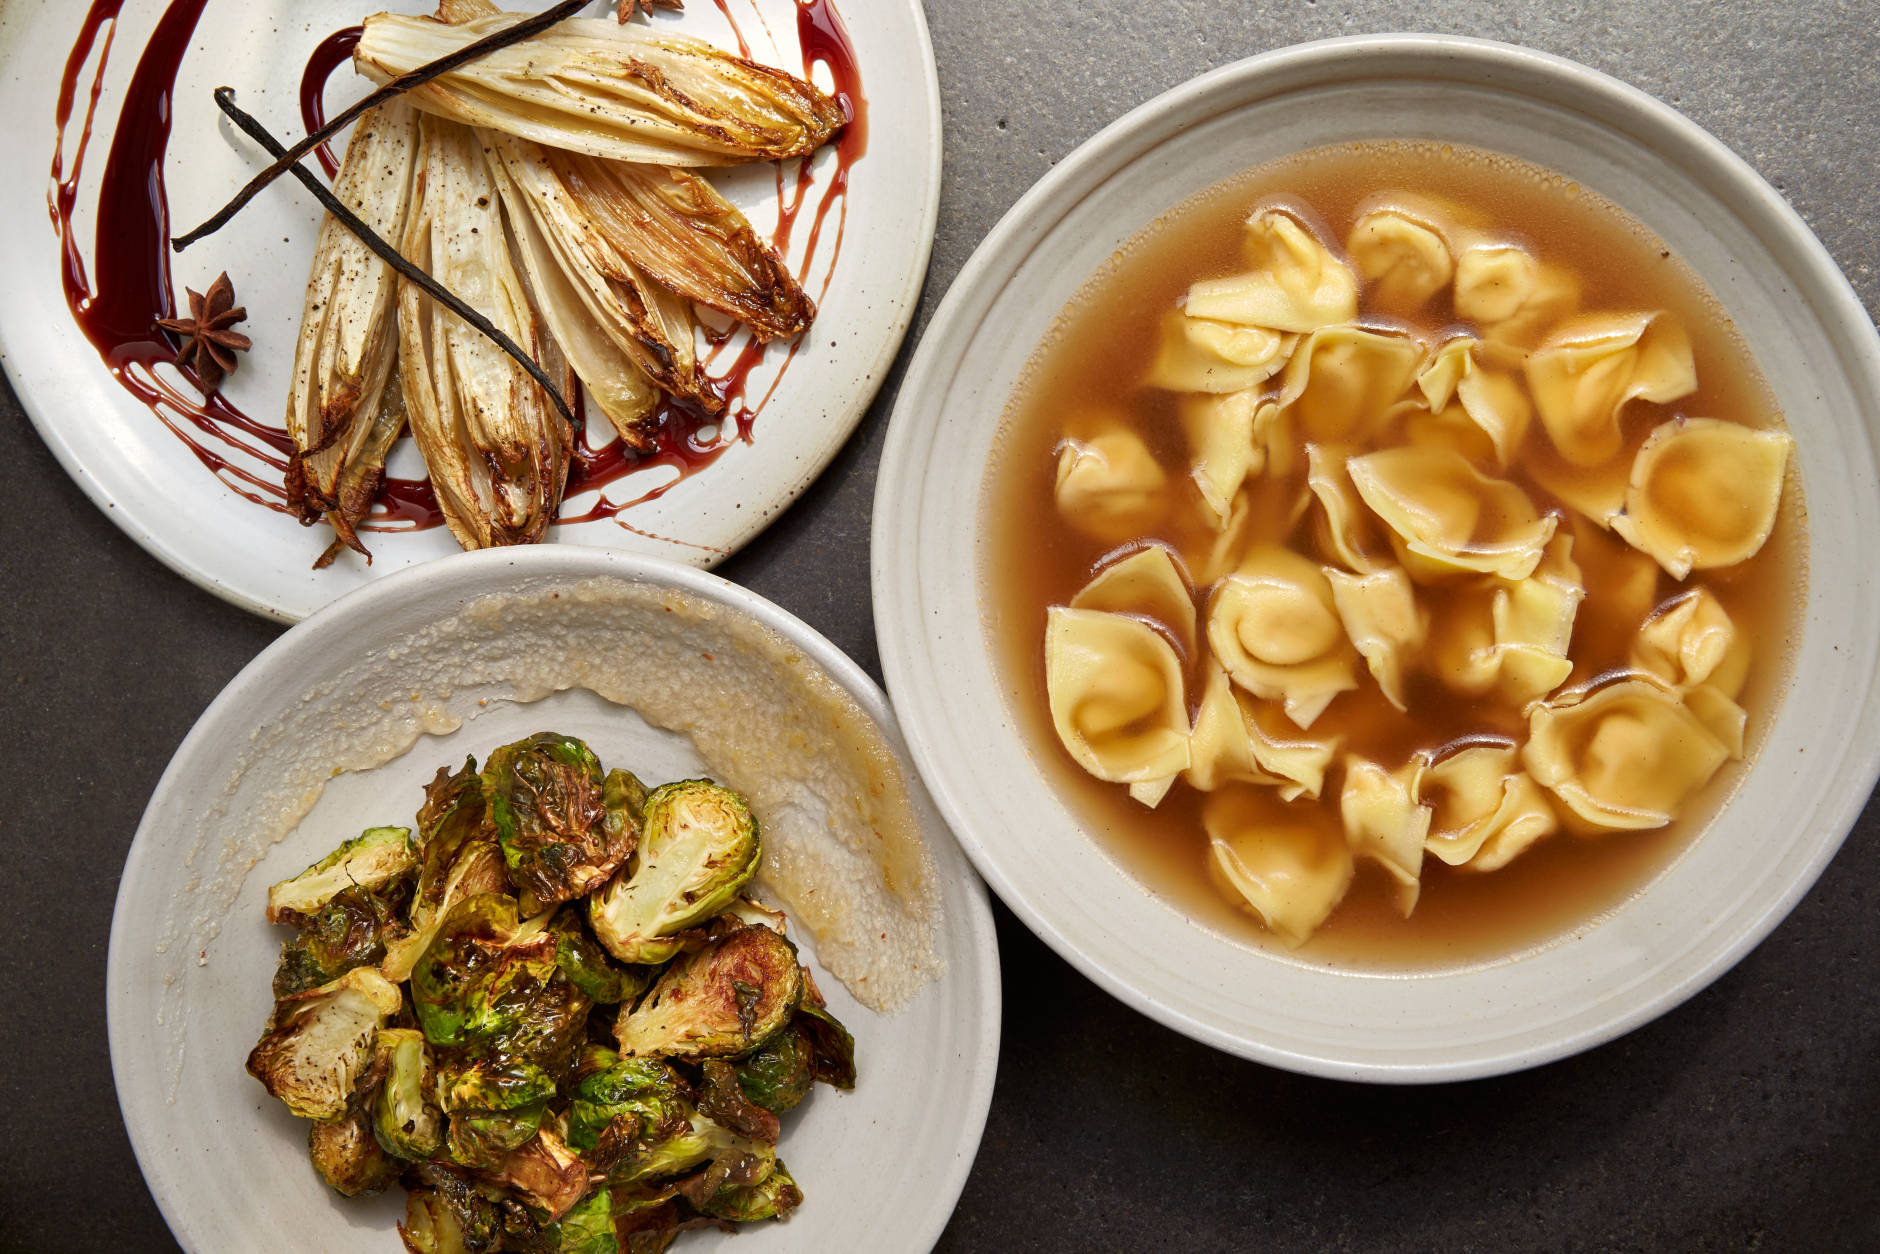 Vanilla-baked endive and pomegranate; roasted Brussels sprouts with apple marmellata; and three meat tortellini in broth on Amy Brandwein's Centrolina holiday catering menu. (Courtesy Centrolina)